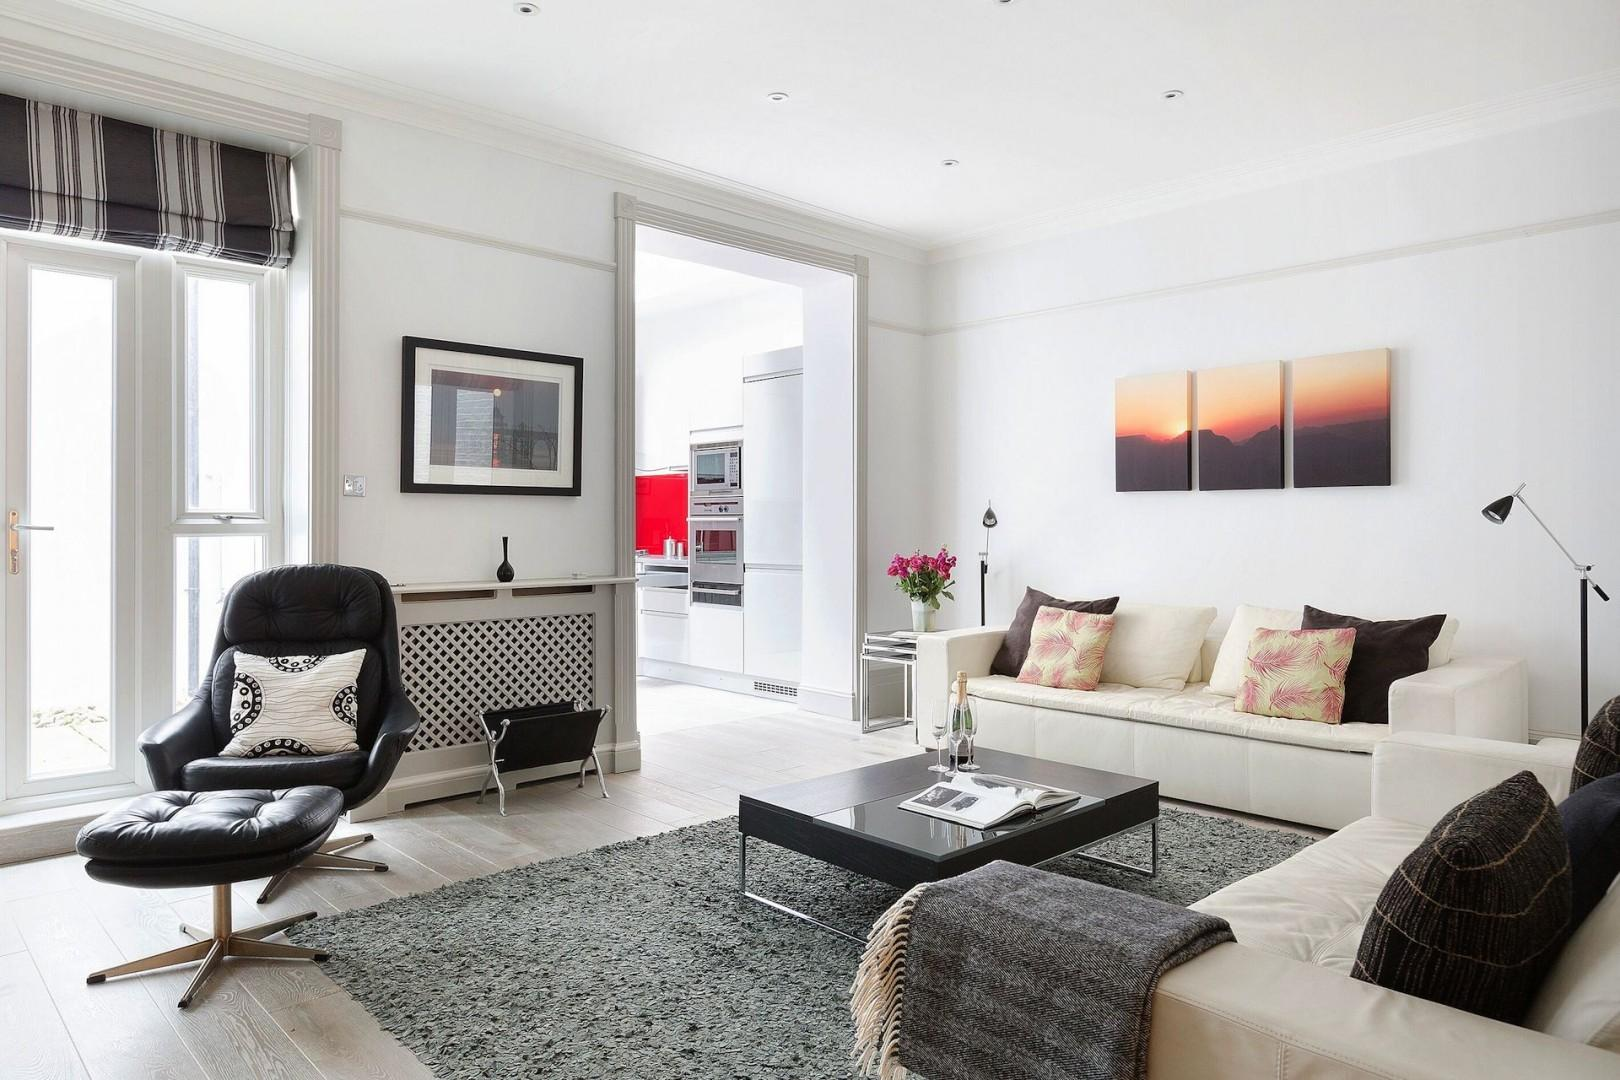 Natural light in the spacious living room